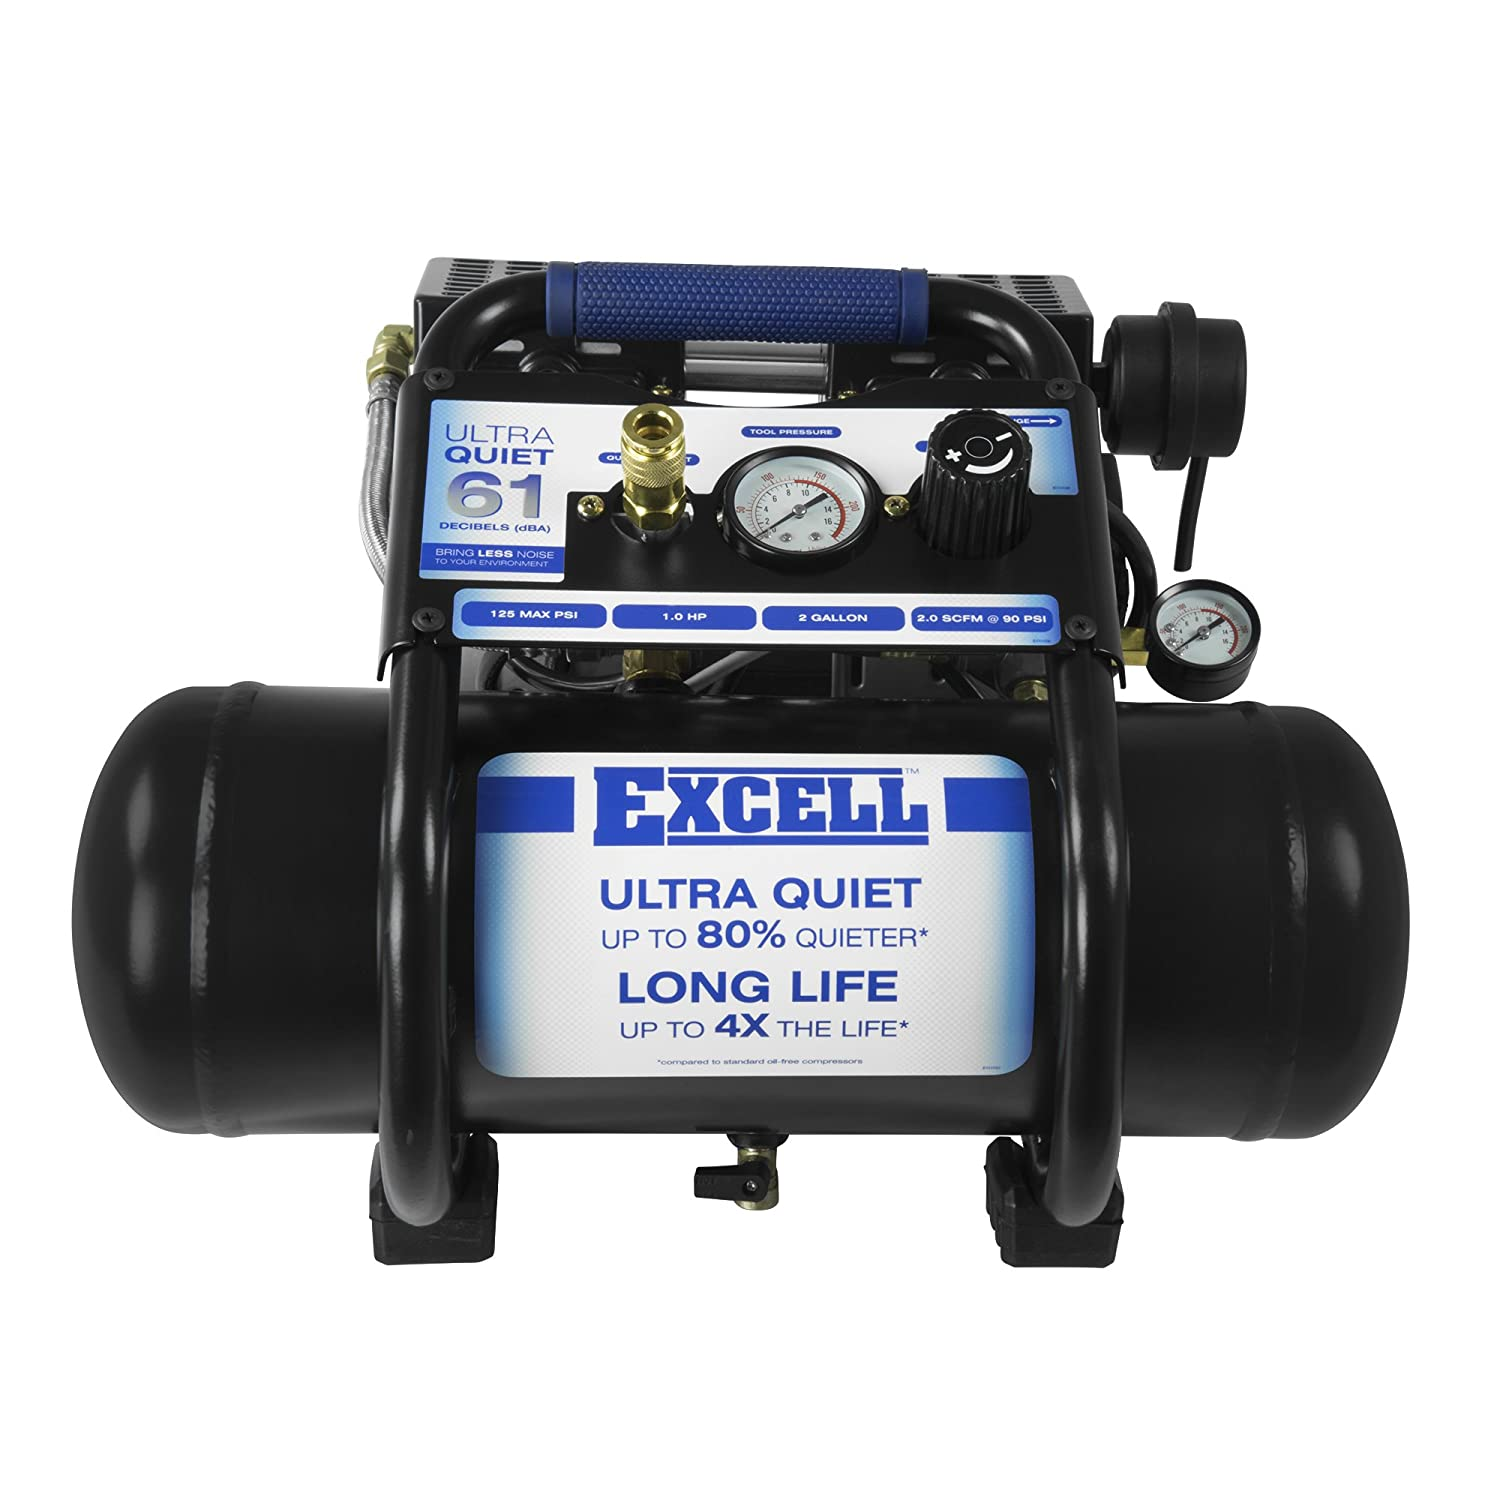 excell Sac22Hpe Excell SAC22HPE 2 Gallon Ultra Quiet Air Compressor EXCELL Air Compressors